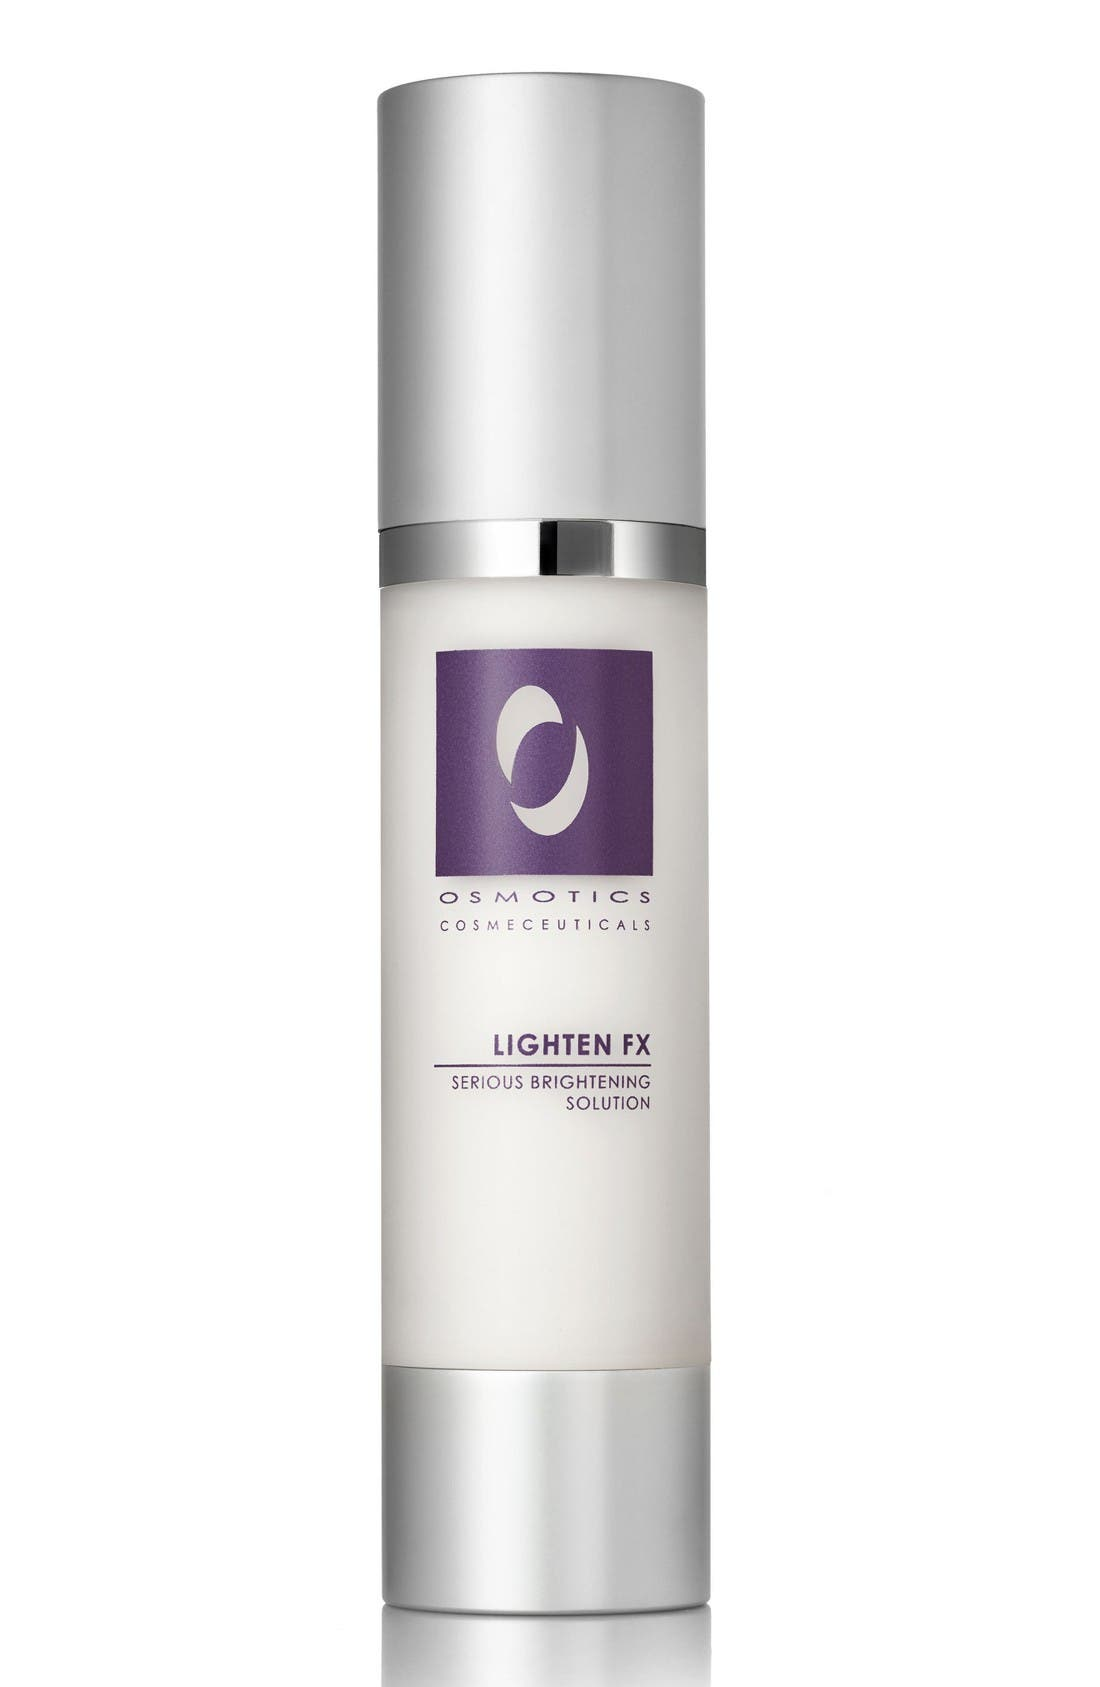 Main Image - Osmotics Cosmeceuticals Lighten FX Serious Brightening Solution